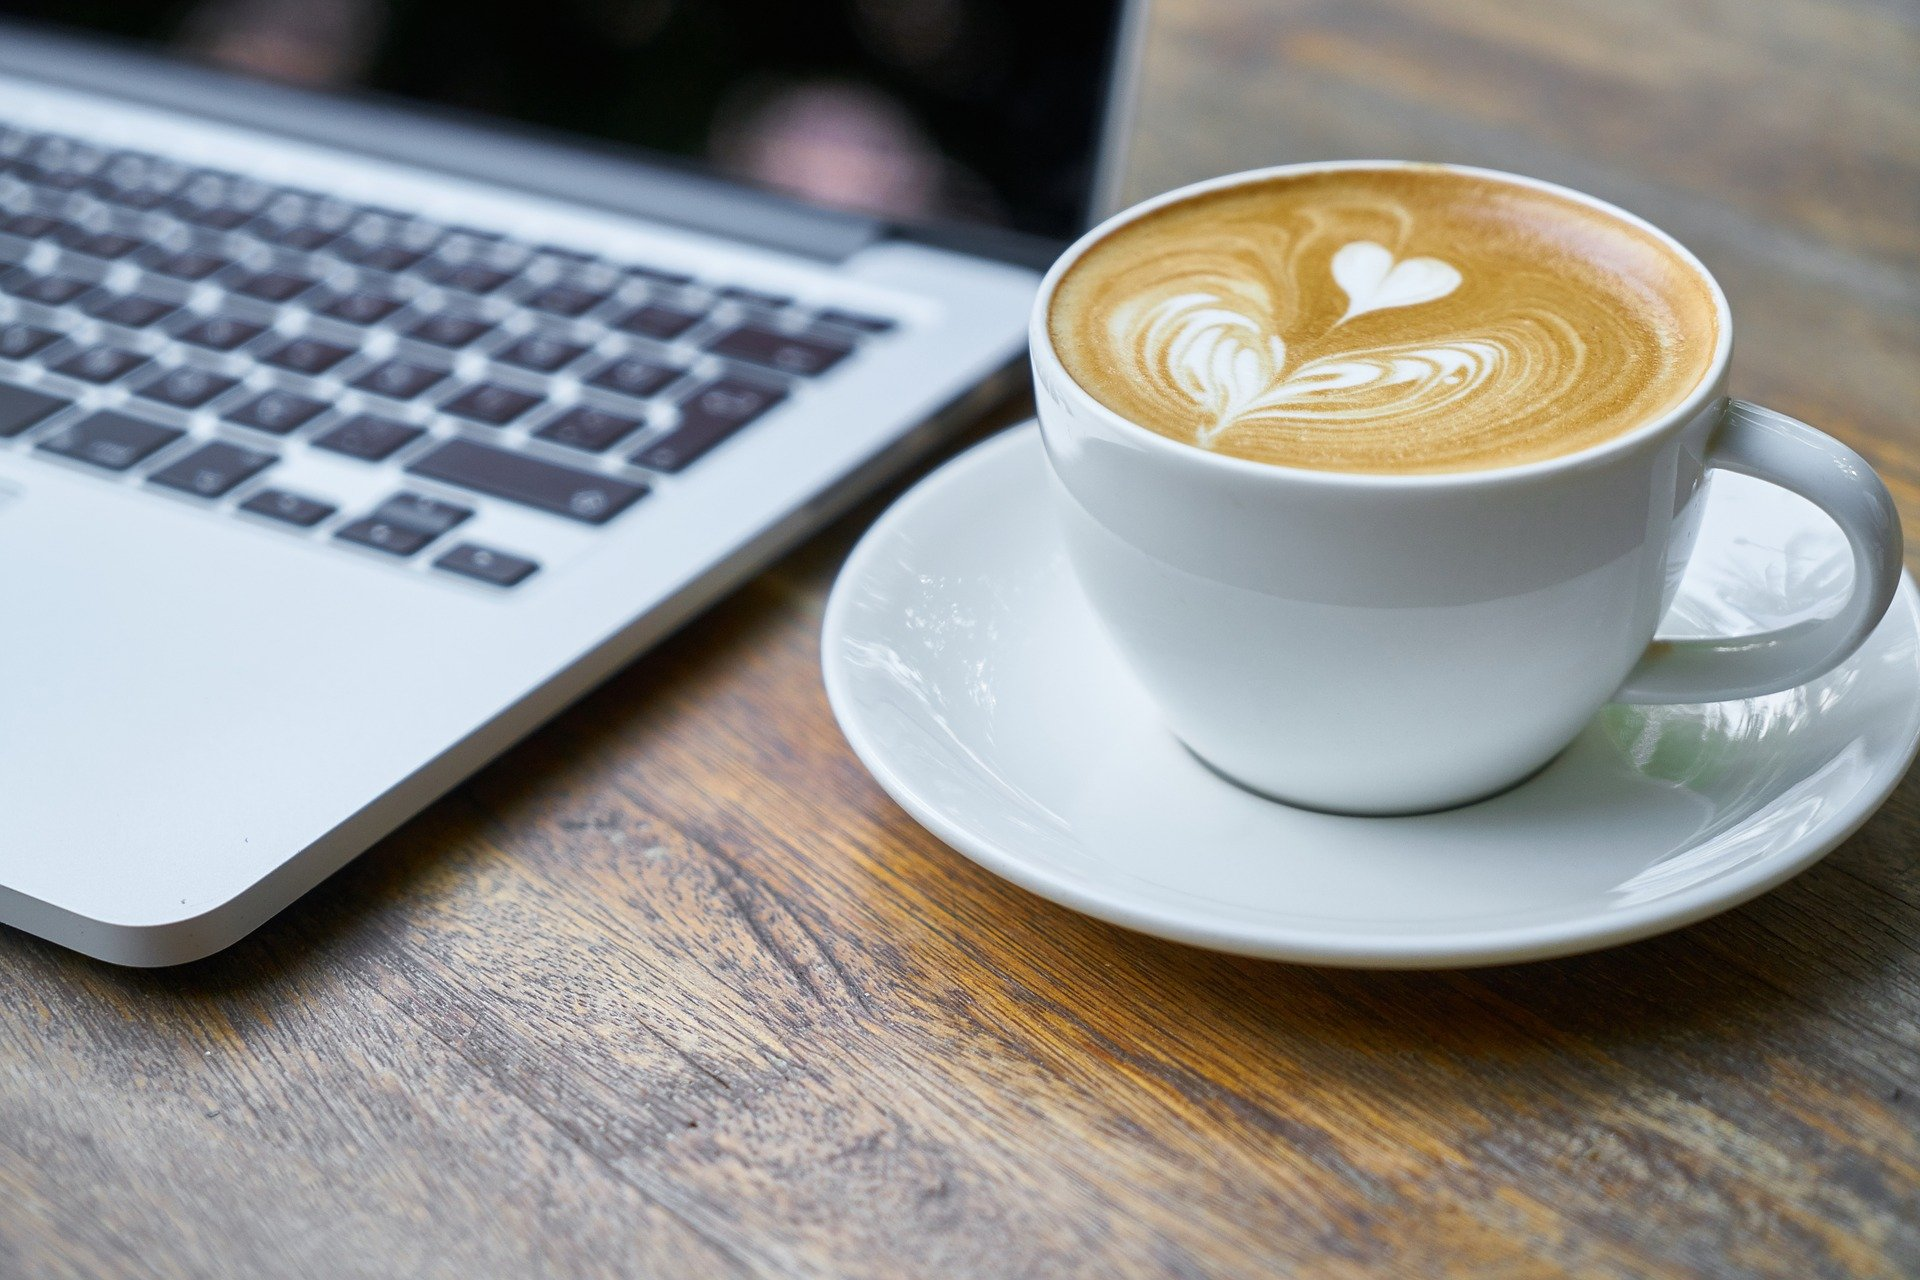 Cappucino and Laptop